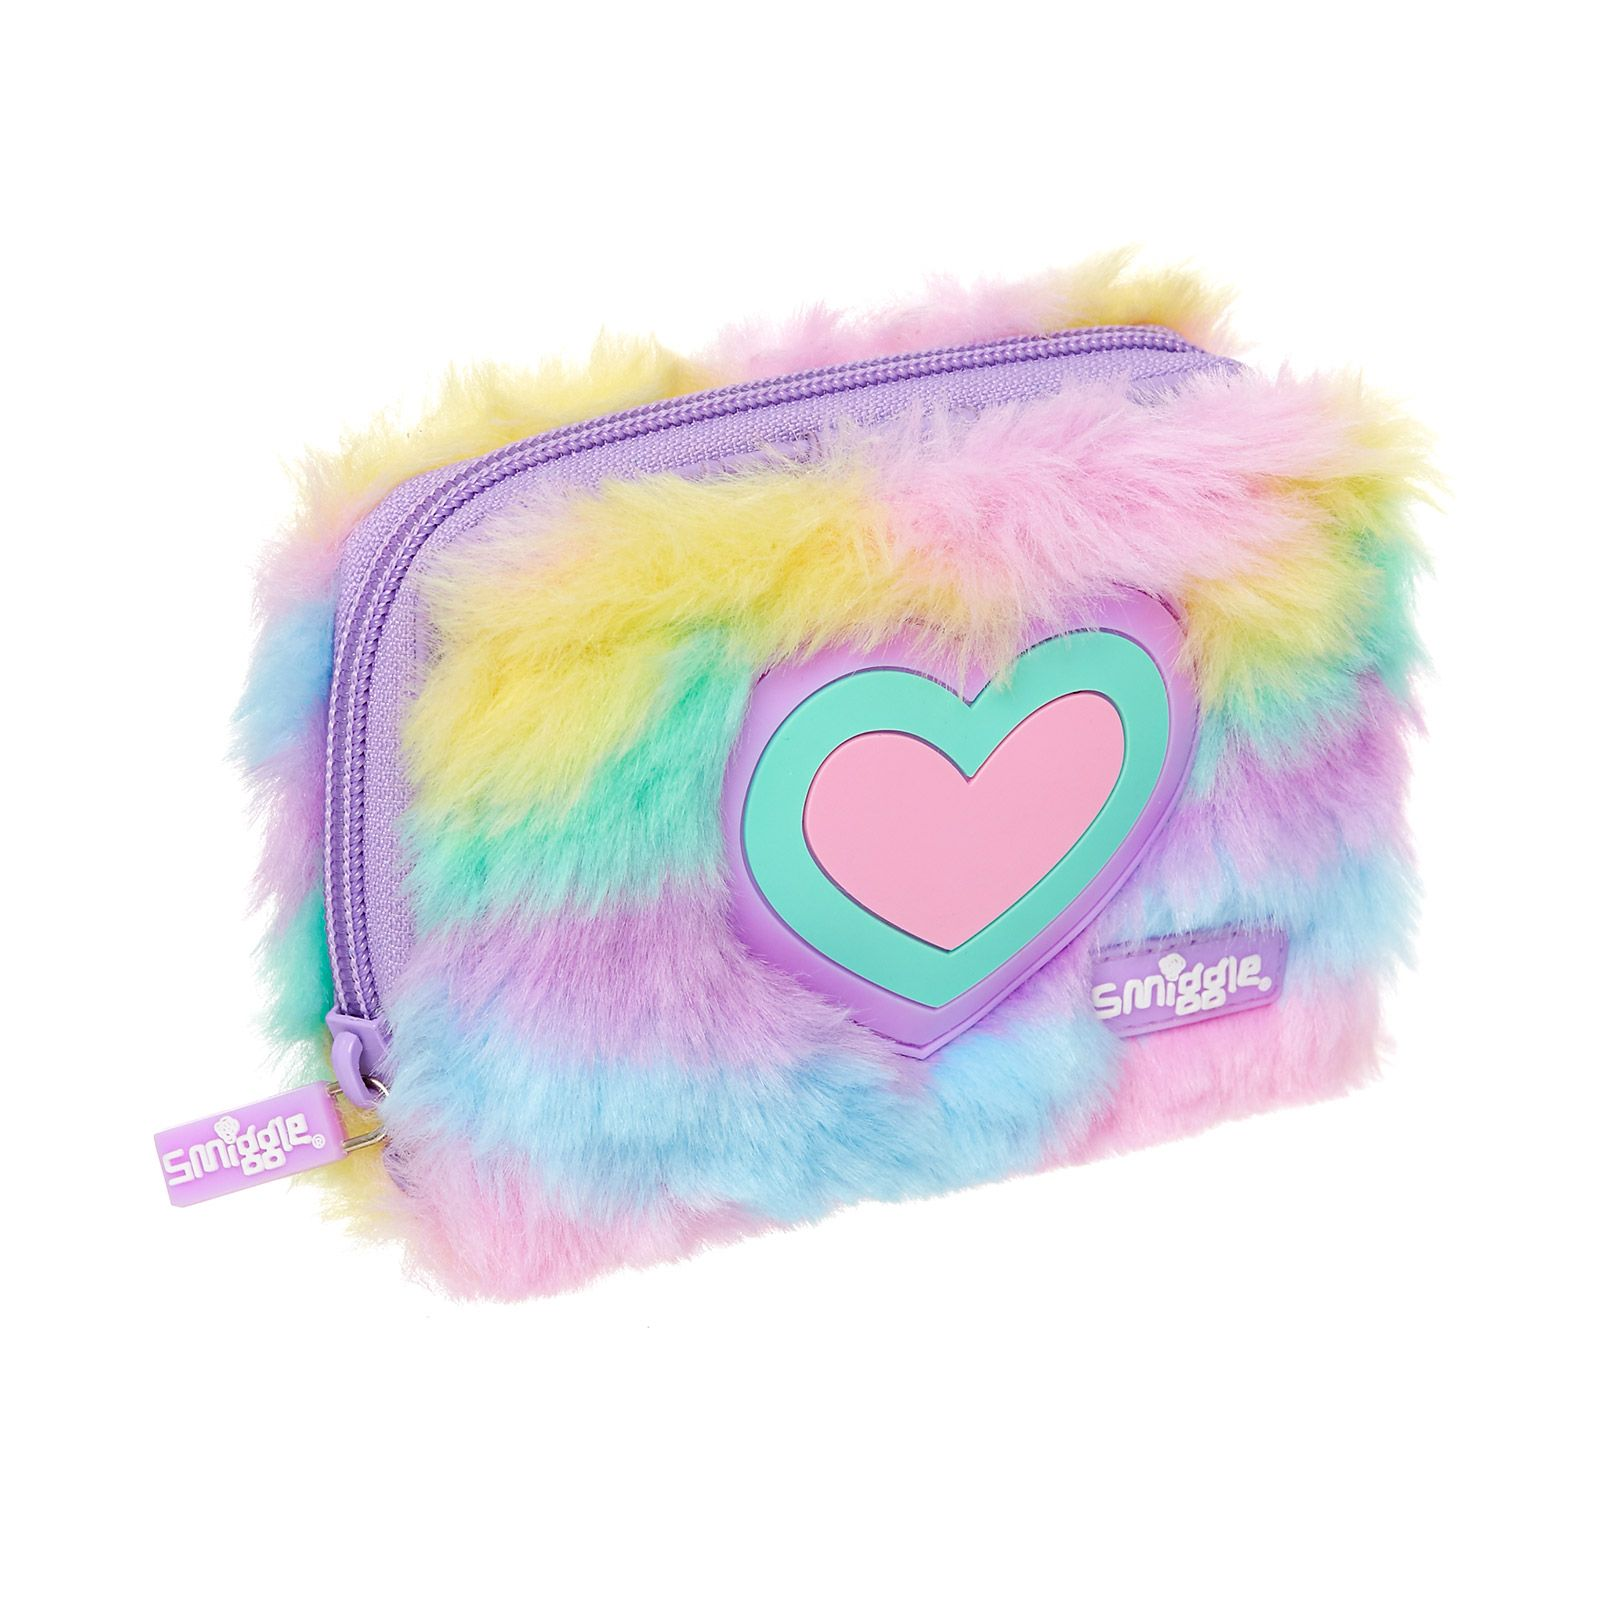 ae80fa02398eb2 Fluffy Swirl Lux Wallet | Smiggle | Just Giselle stuff | Glitter ...